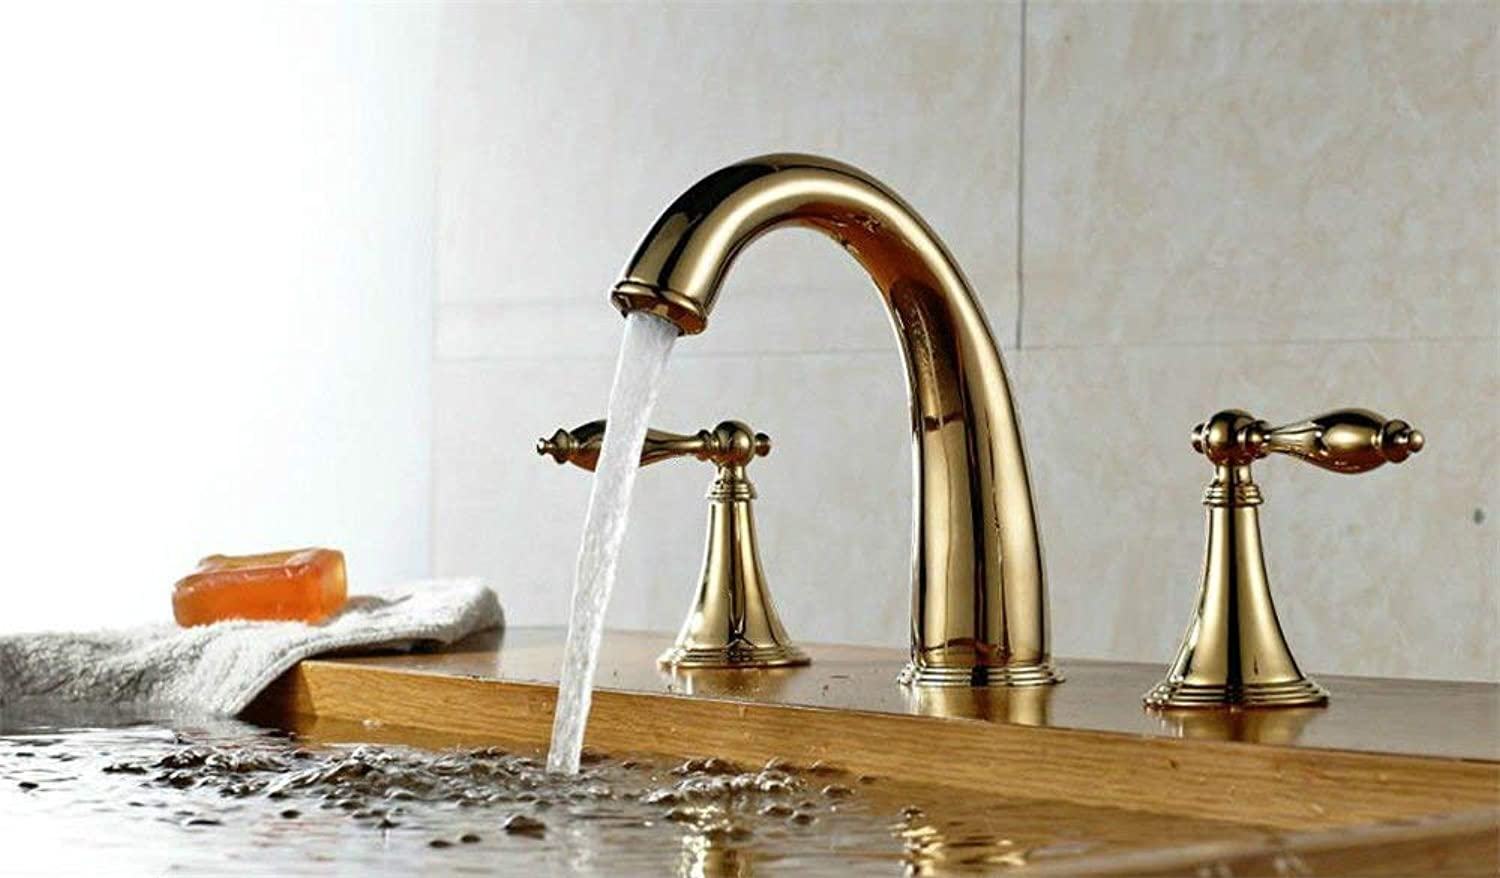 Oudan Kitchen Mixer Tap solid brass hot and cold kitchen sink basin mixer tap two handle tap sink faucet (color   -, Size   -)